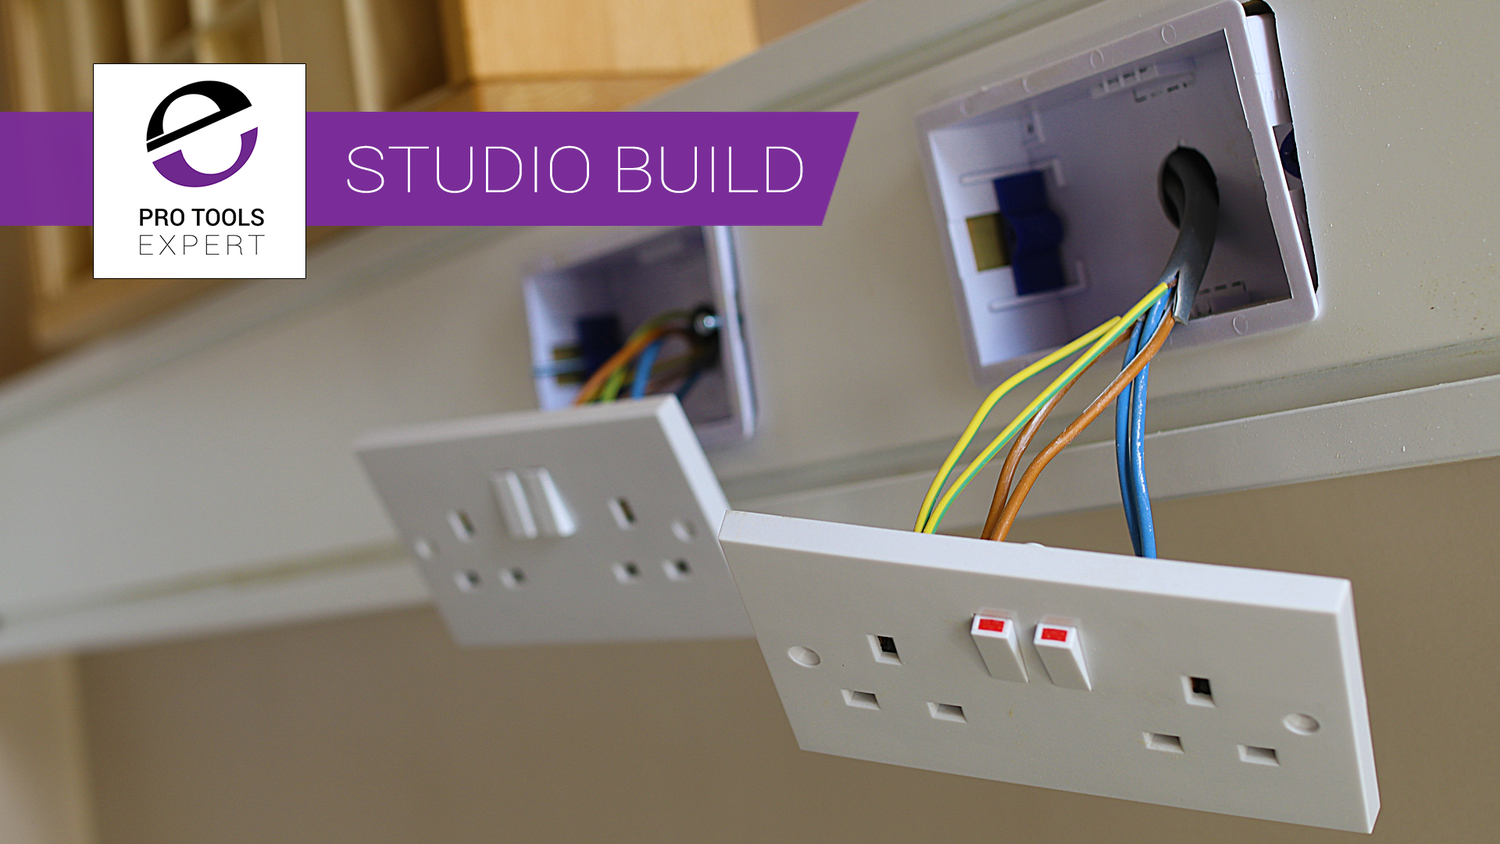 Pro Tools Studio Build Future Proofing Recording What Is Trunking Wiring System Electrics With Systems